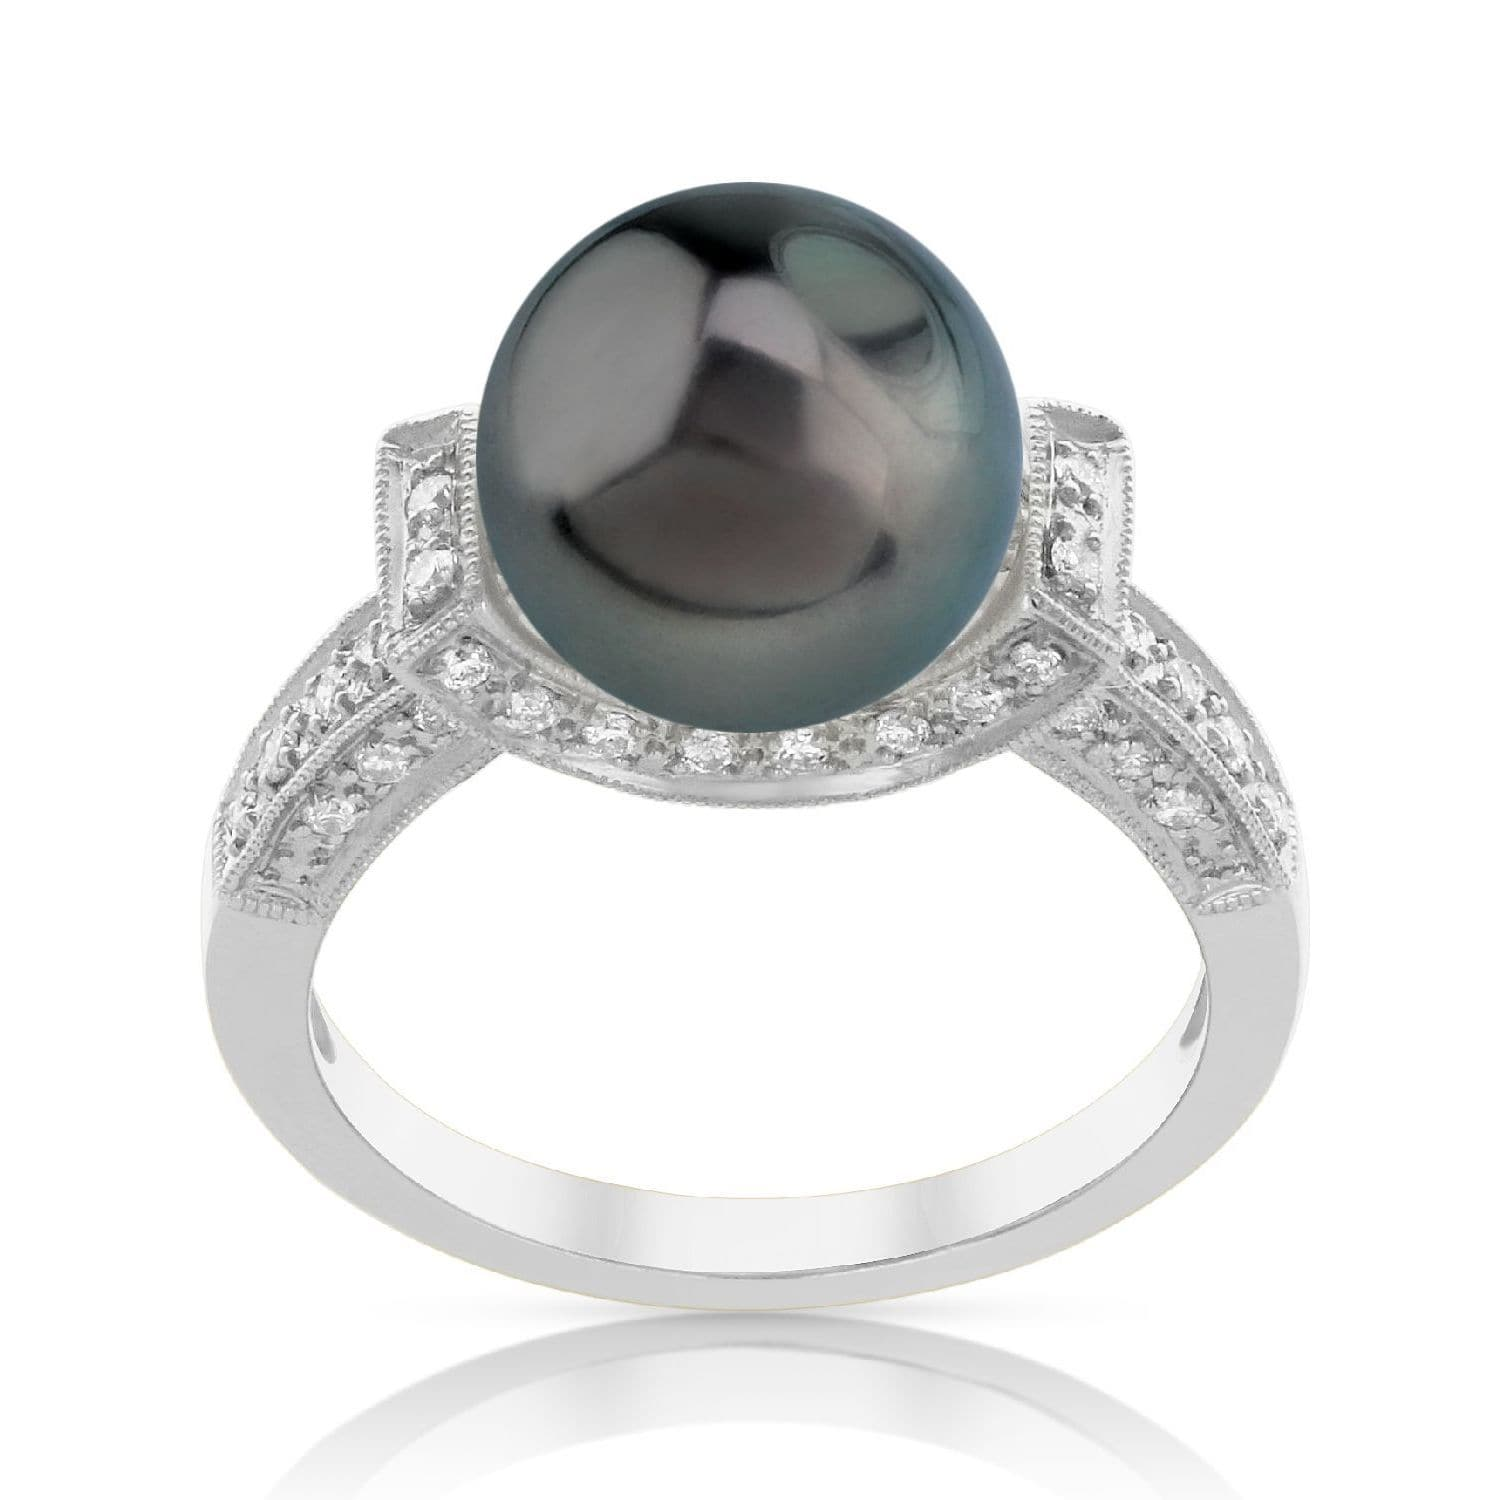 Radiance Pearl 18k Gold Tahitian South Sea Pearl and Diamond Ring (G-H, SI1-SI2) by Overstock